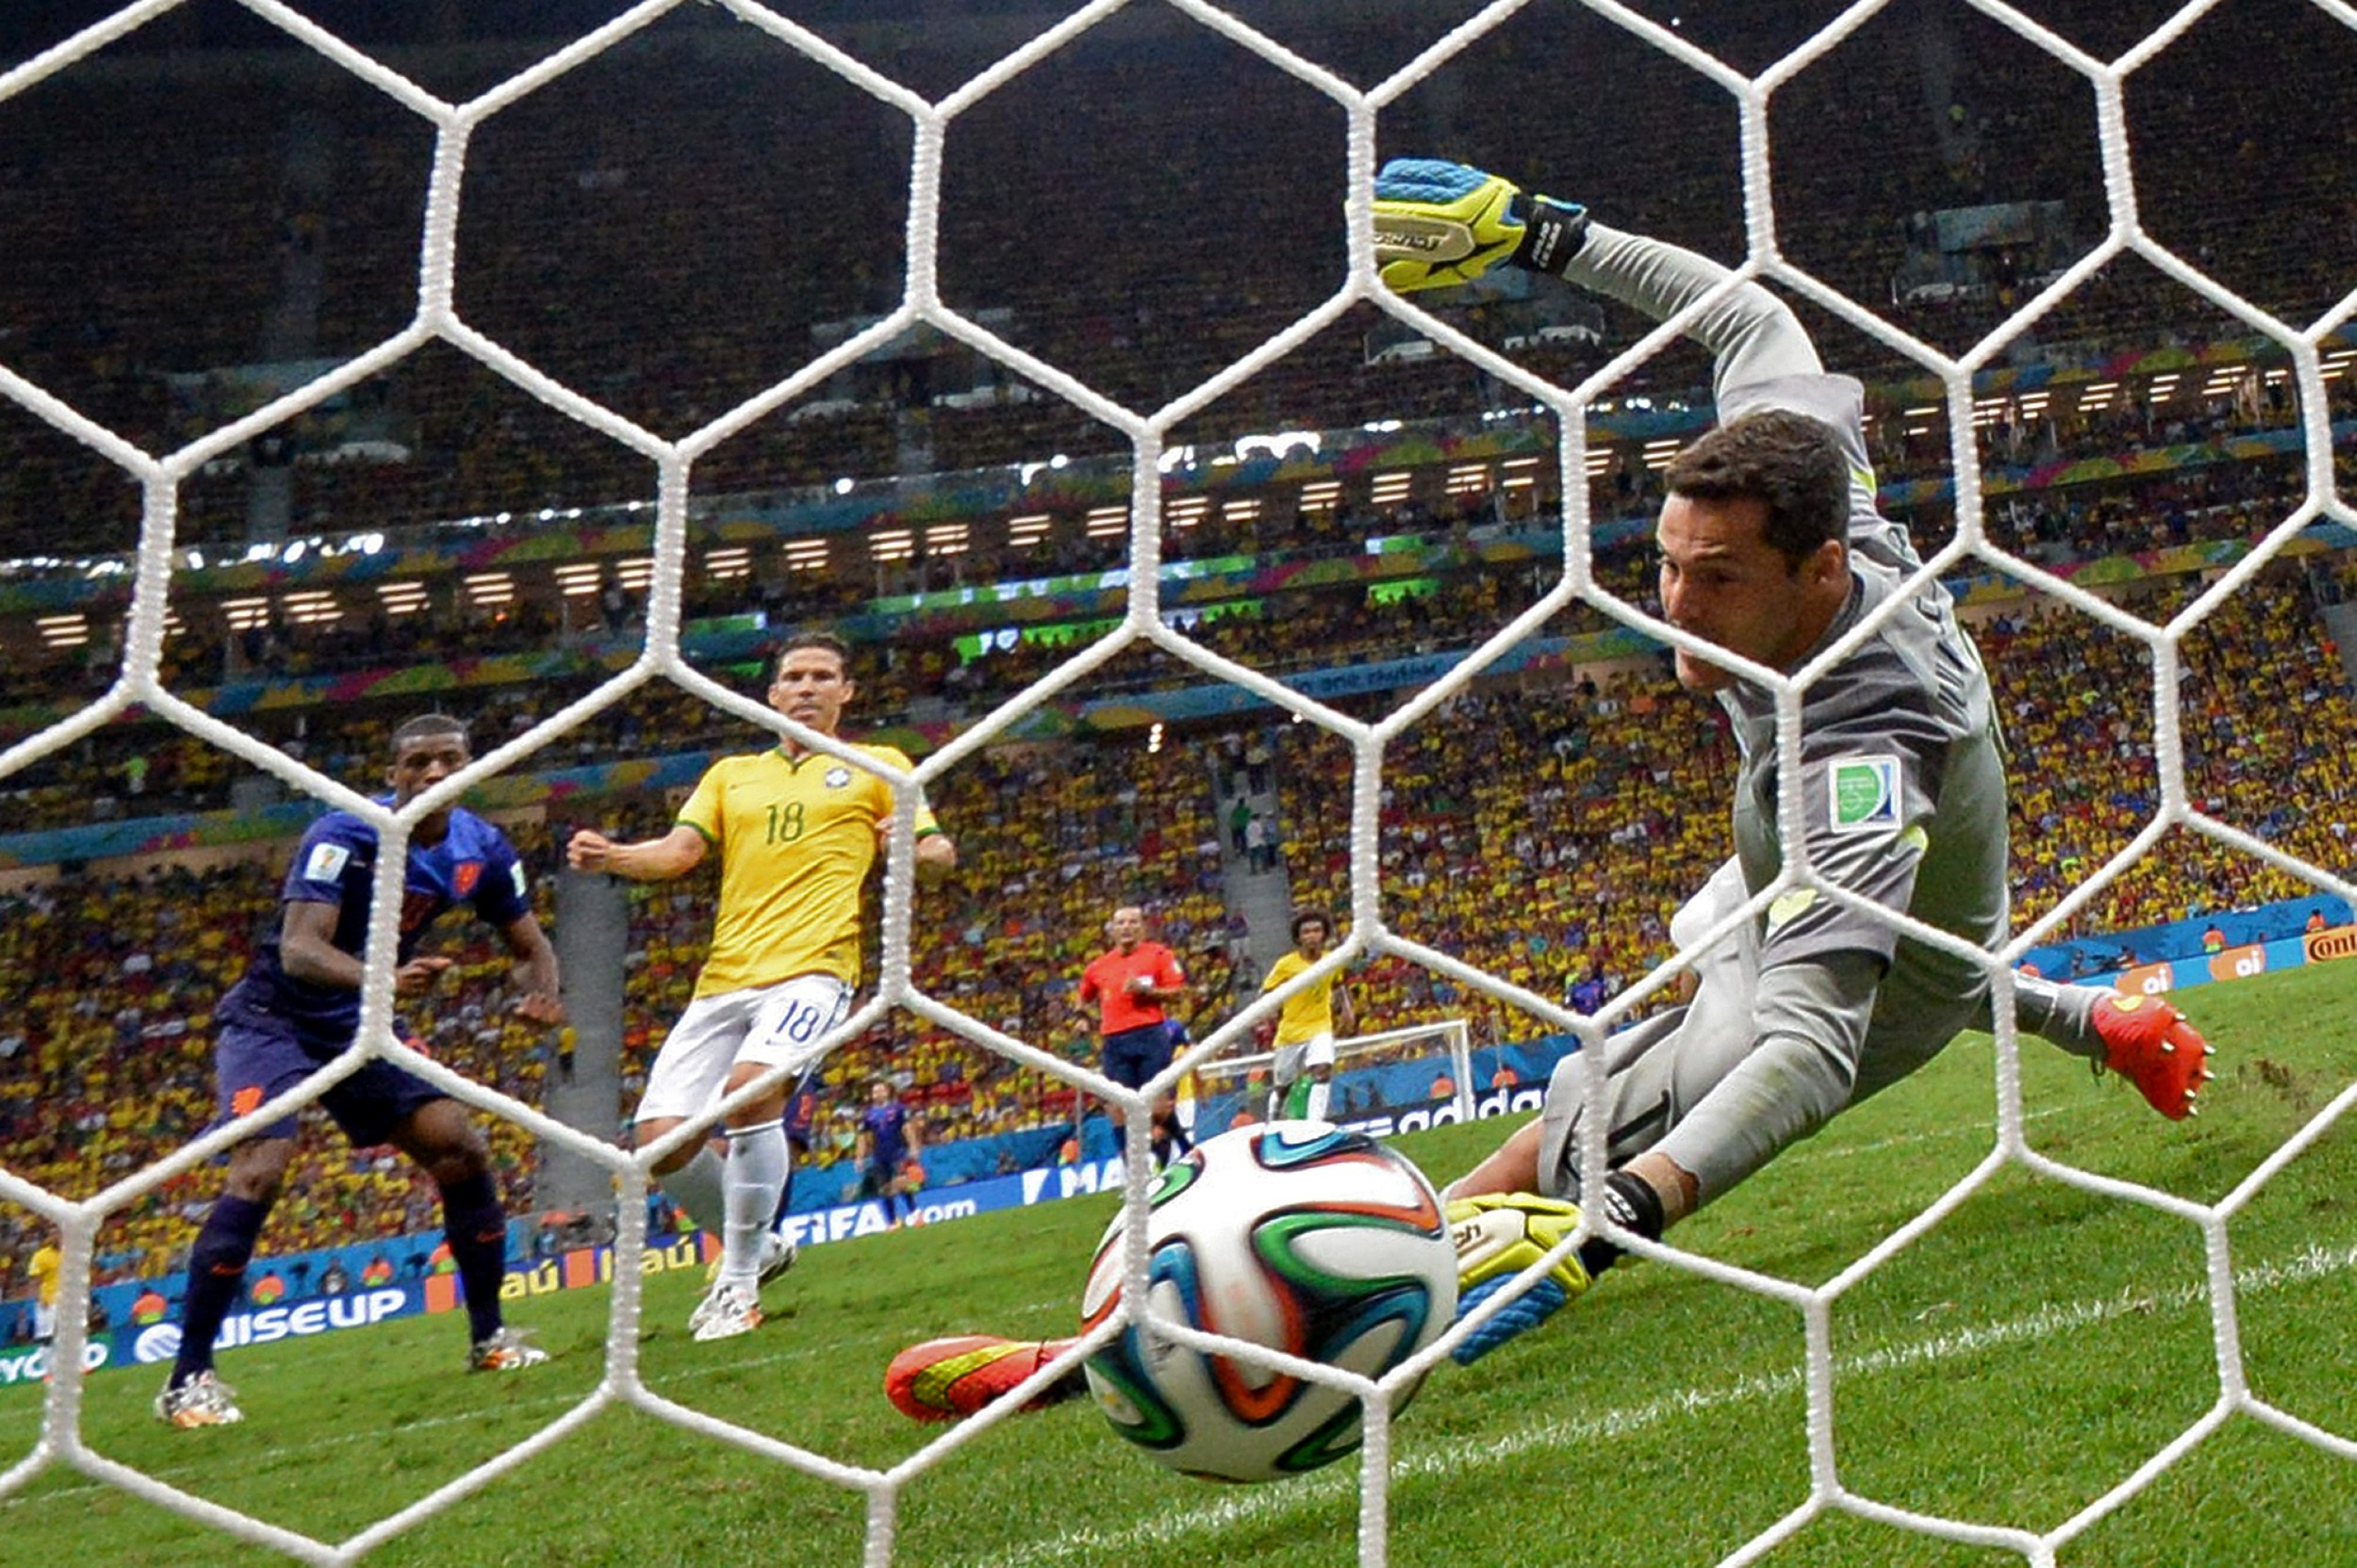 2014 FIFA World Cup: Netherlands pounds Brazil 3-0 in third-place game